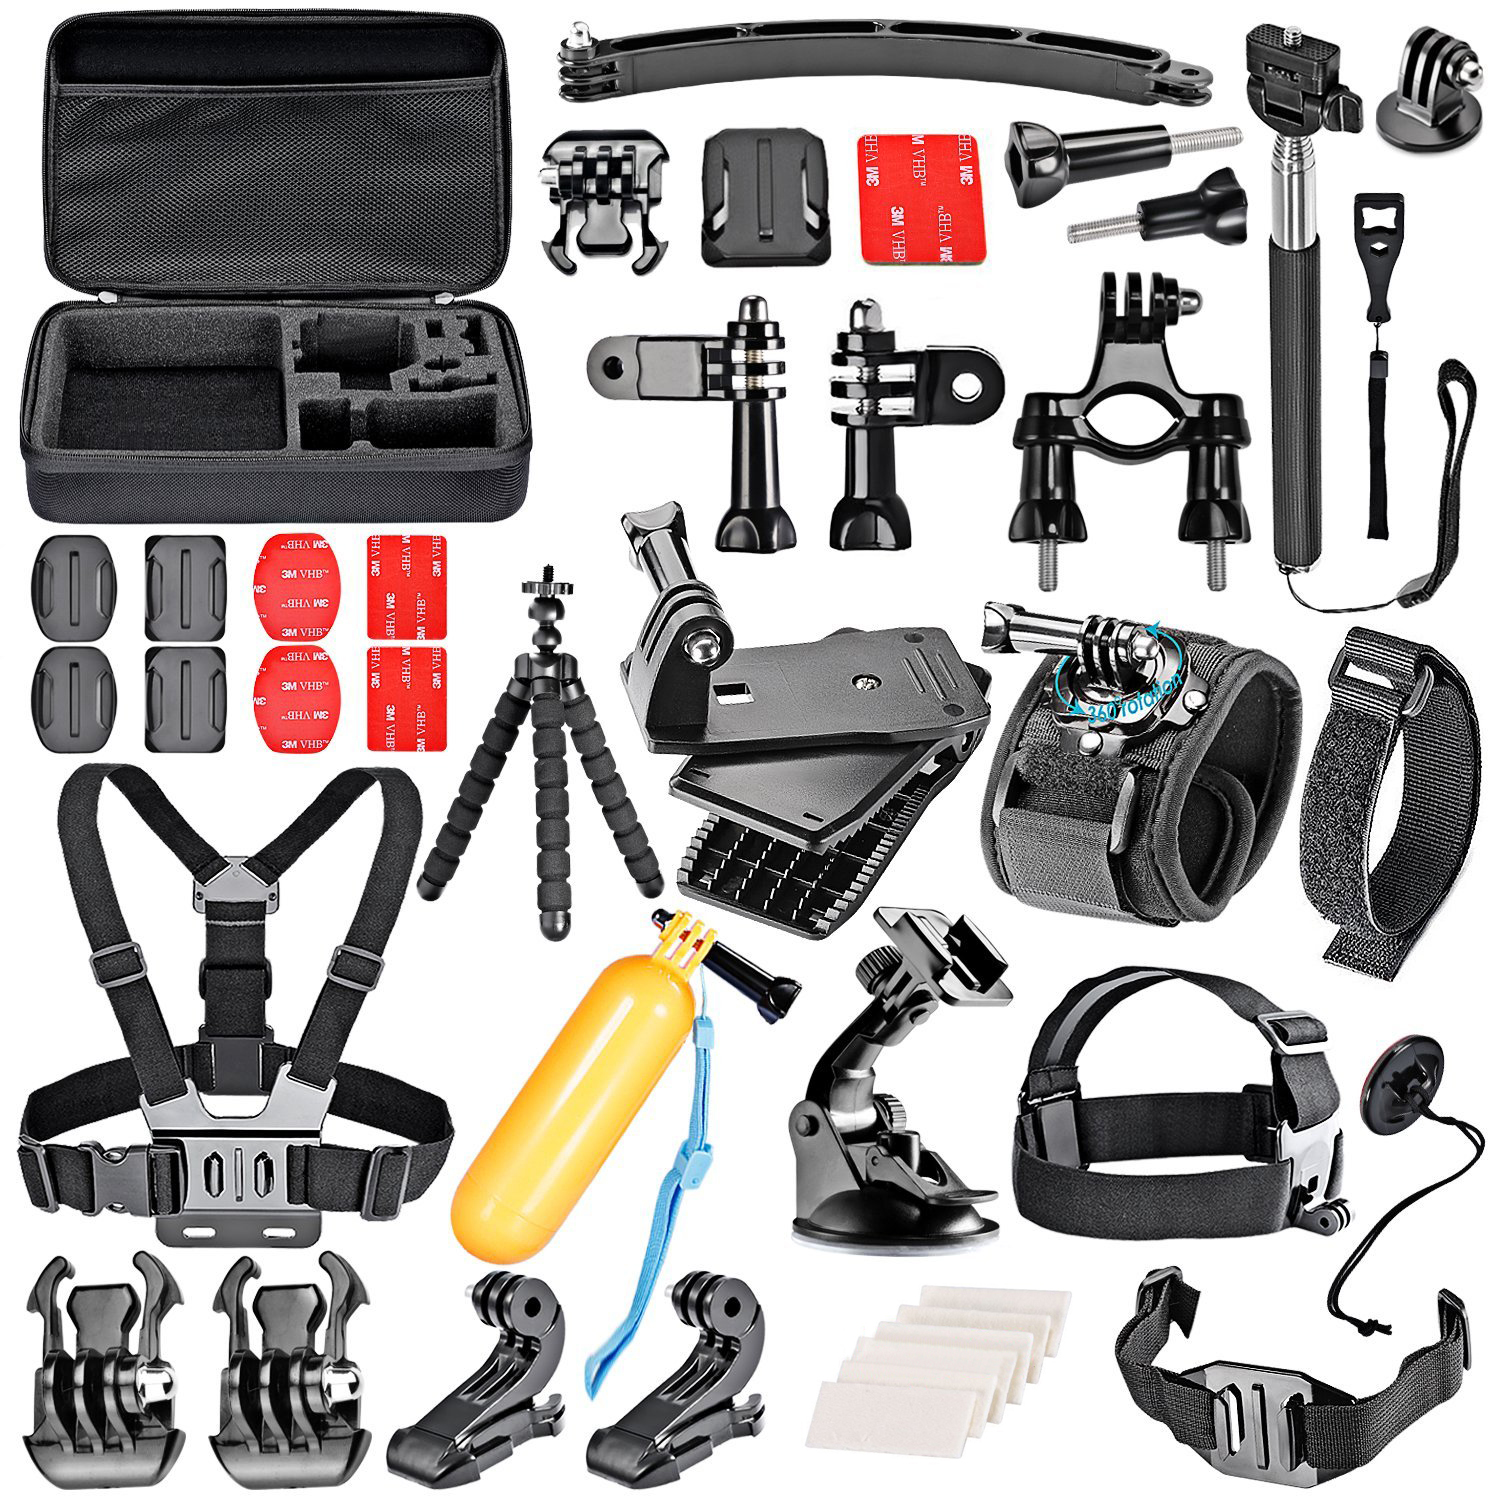 Ces-36-in-1 sport kit di accessori per gopro hero4 session hero series per xiaomi yi in sci arrampicata bike campeggio immersioni e CES